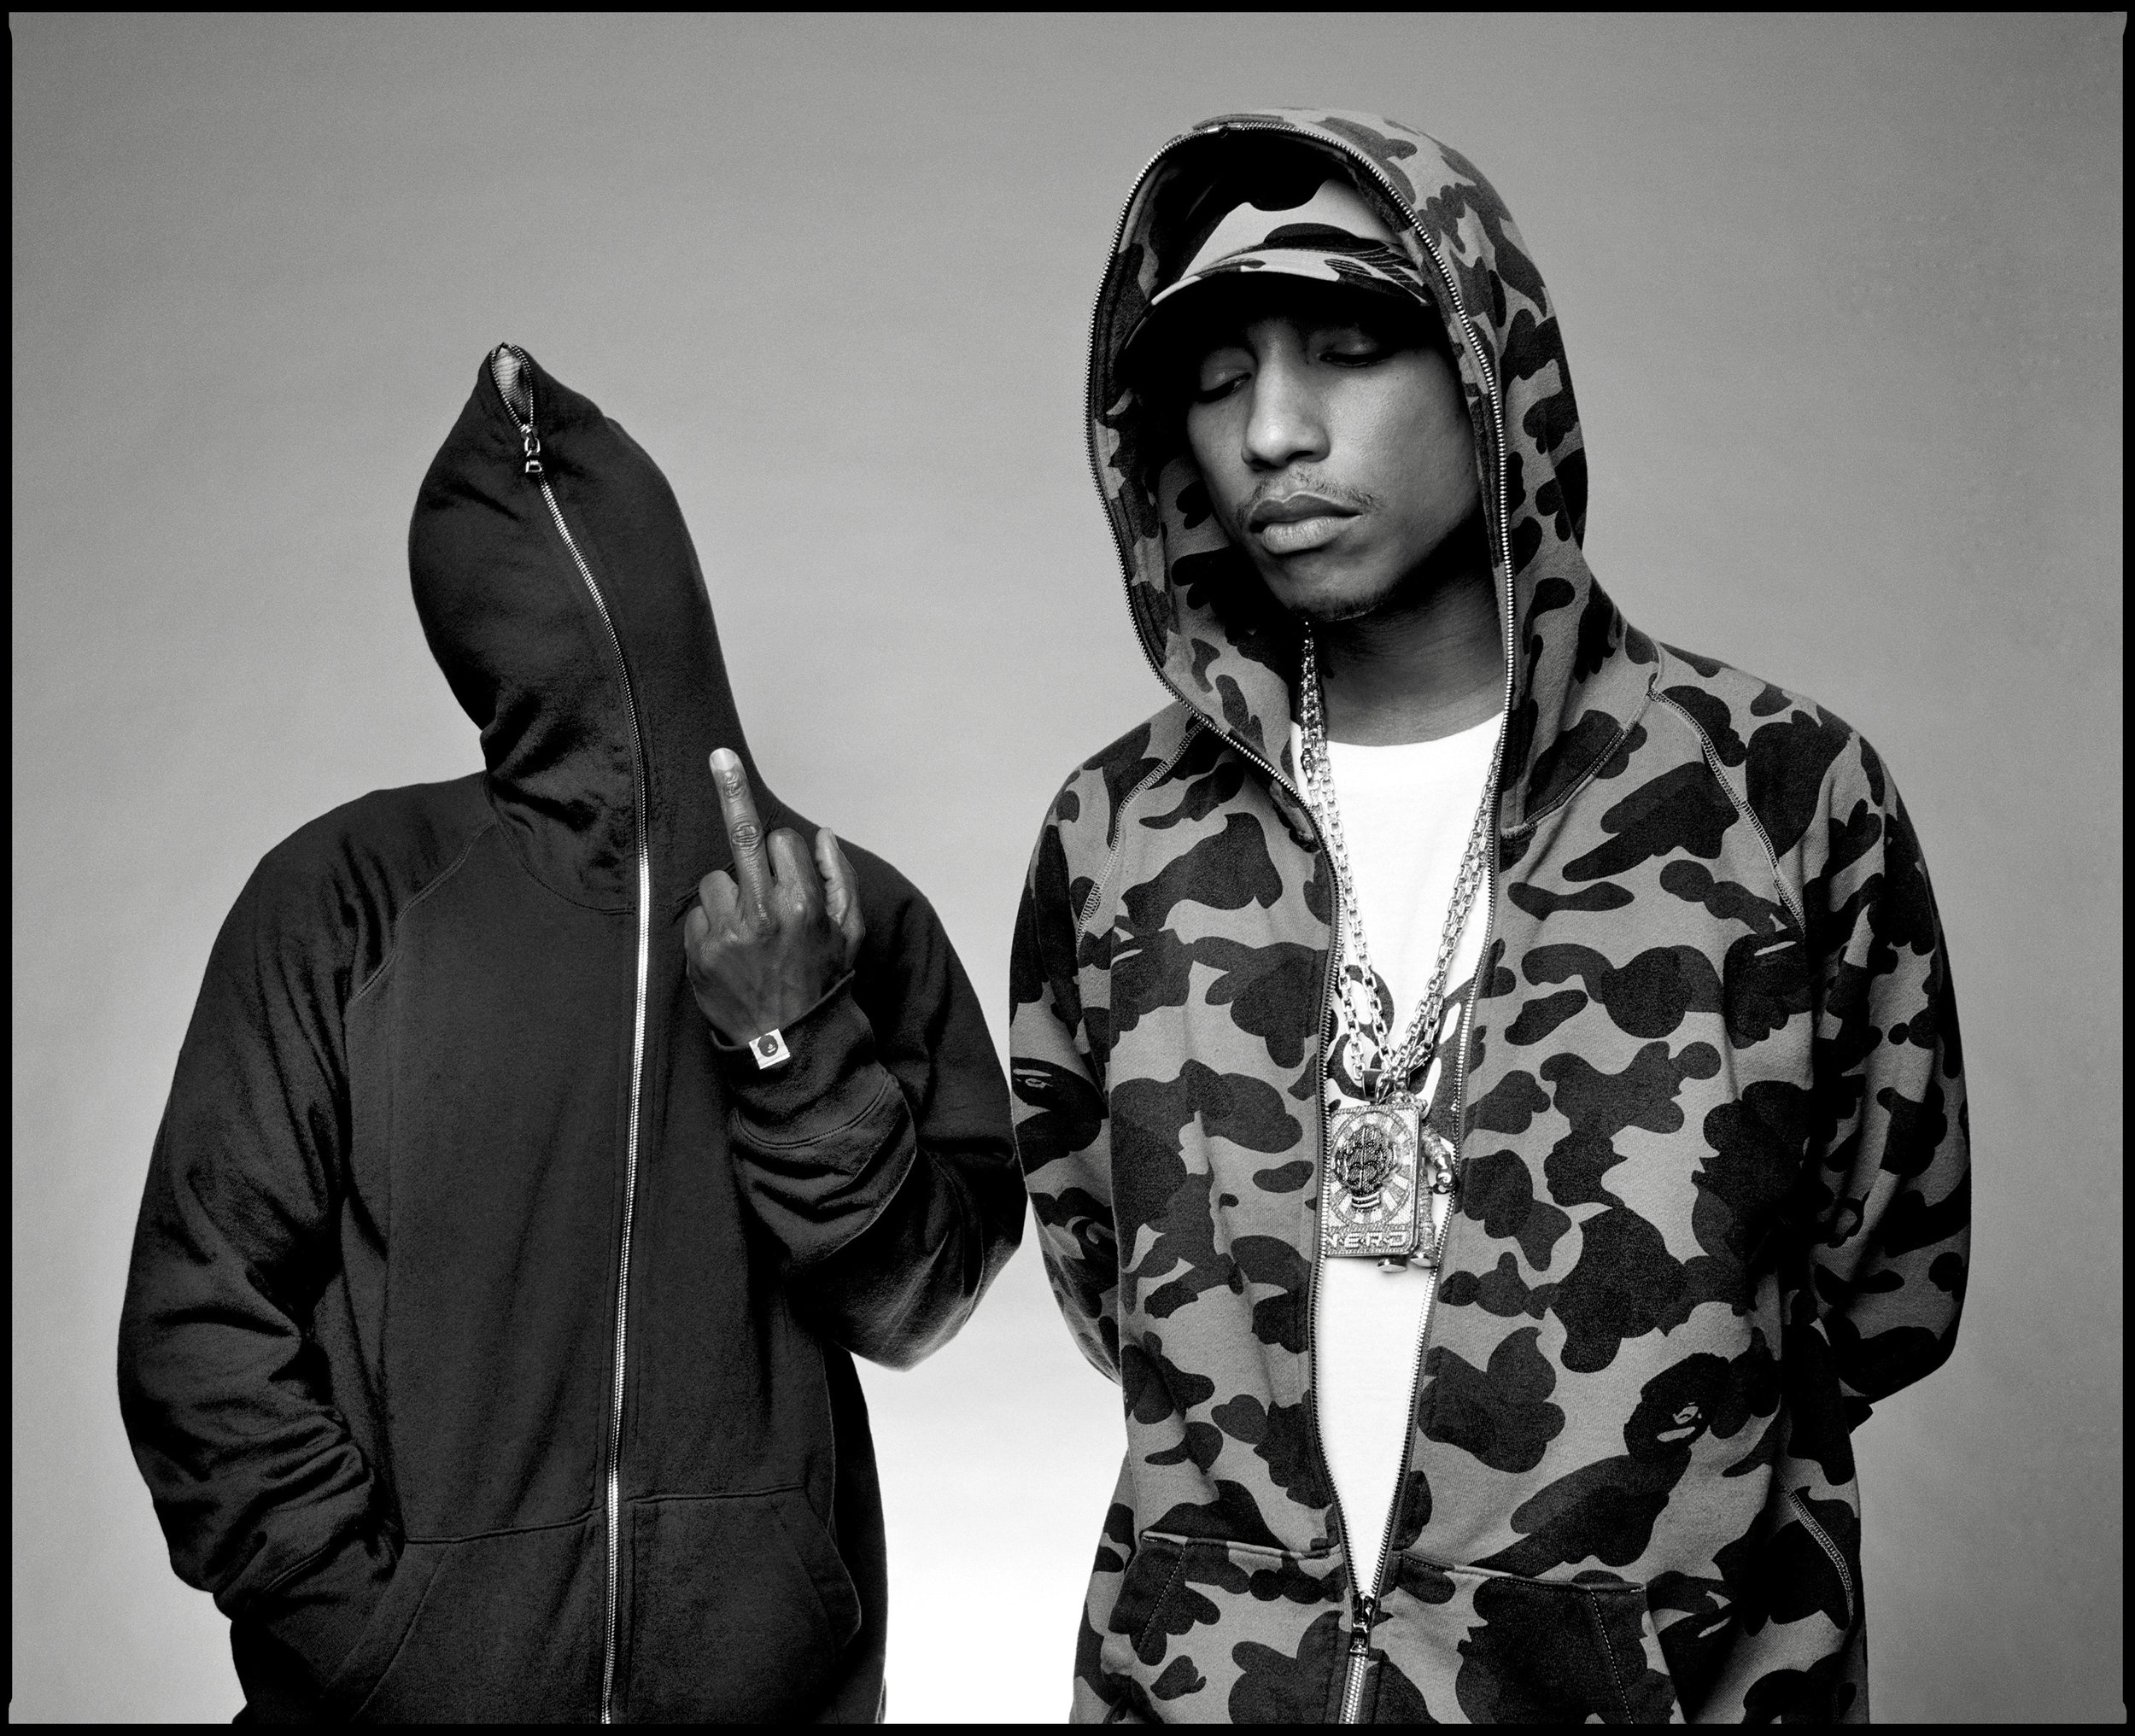 Pharrell Williams / N.E.R.D.